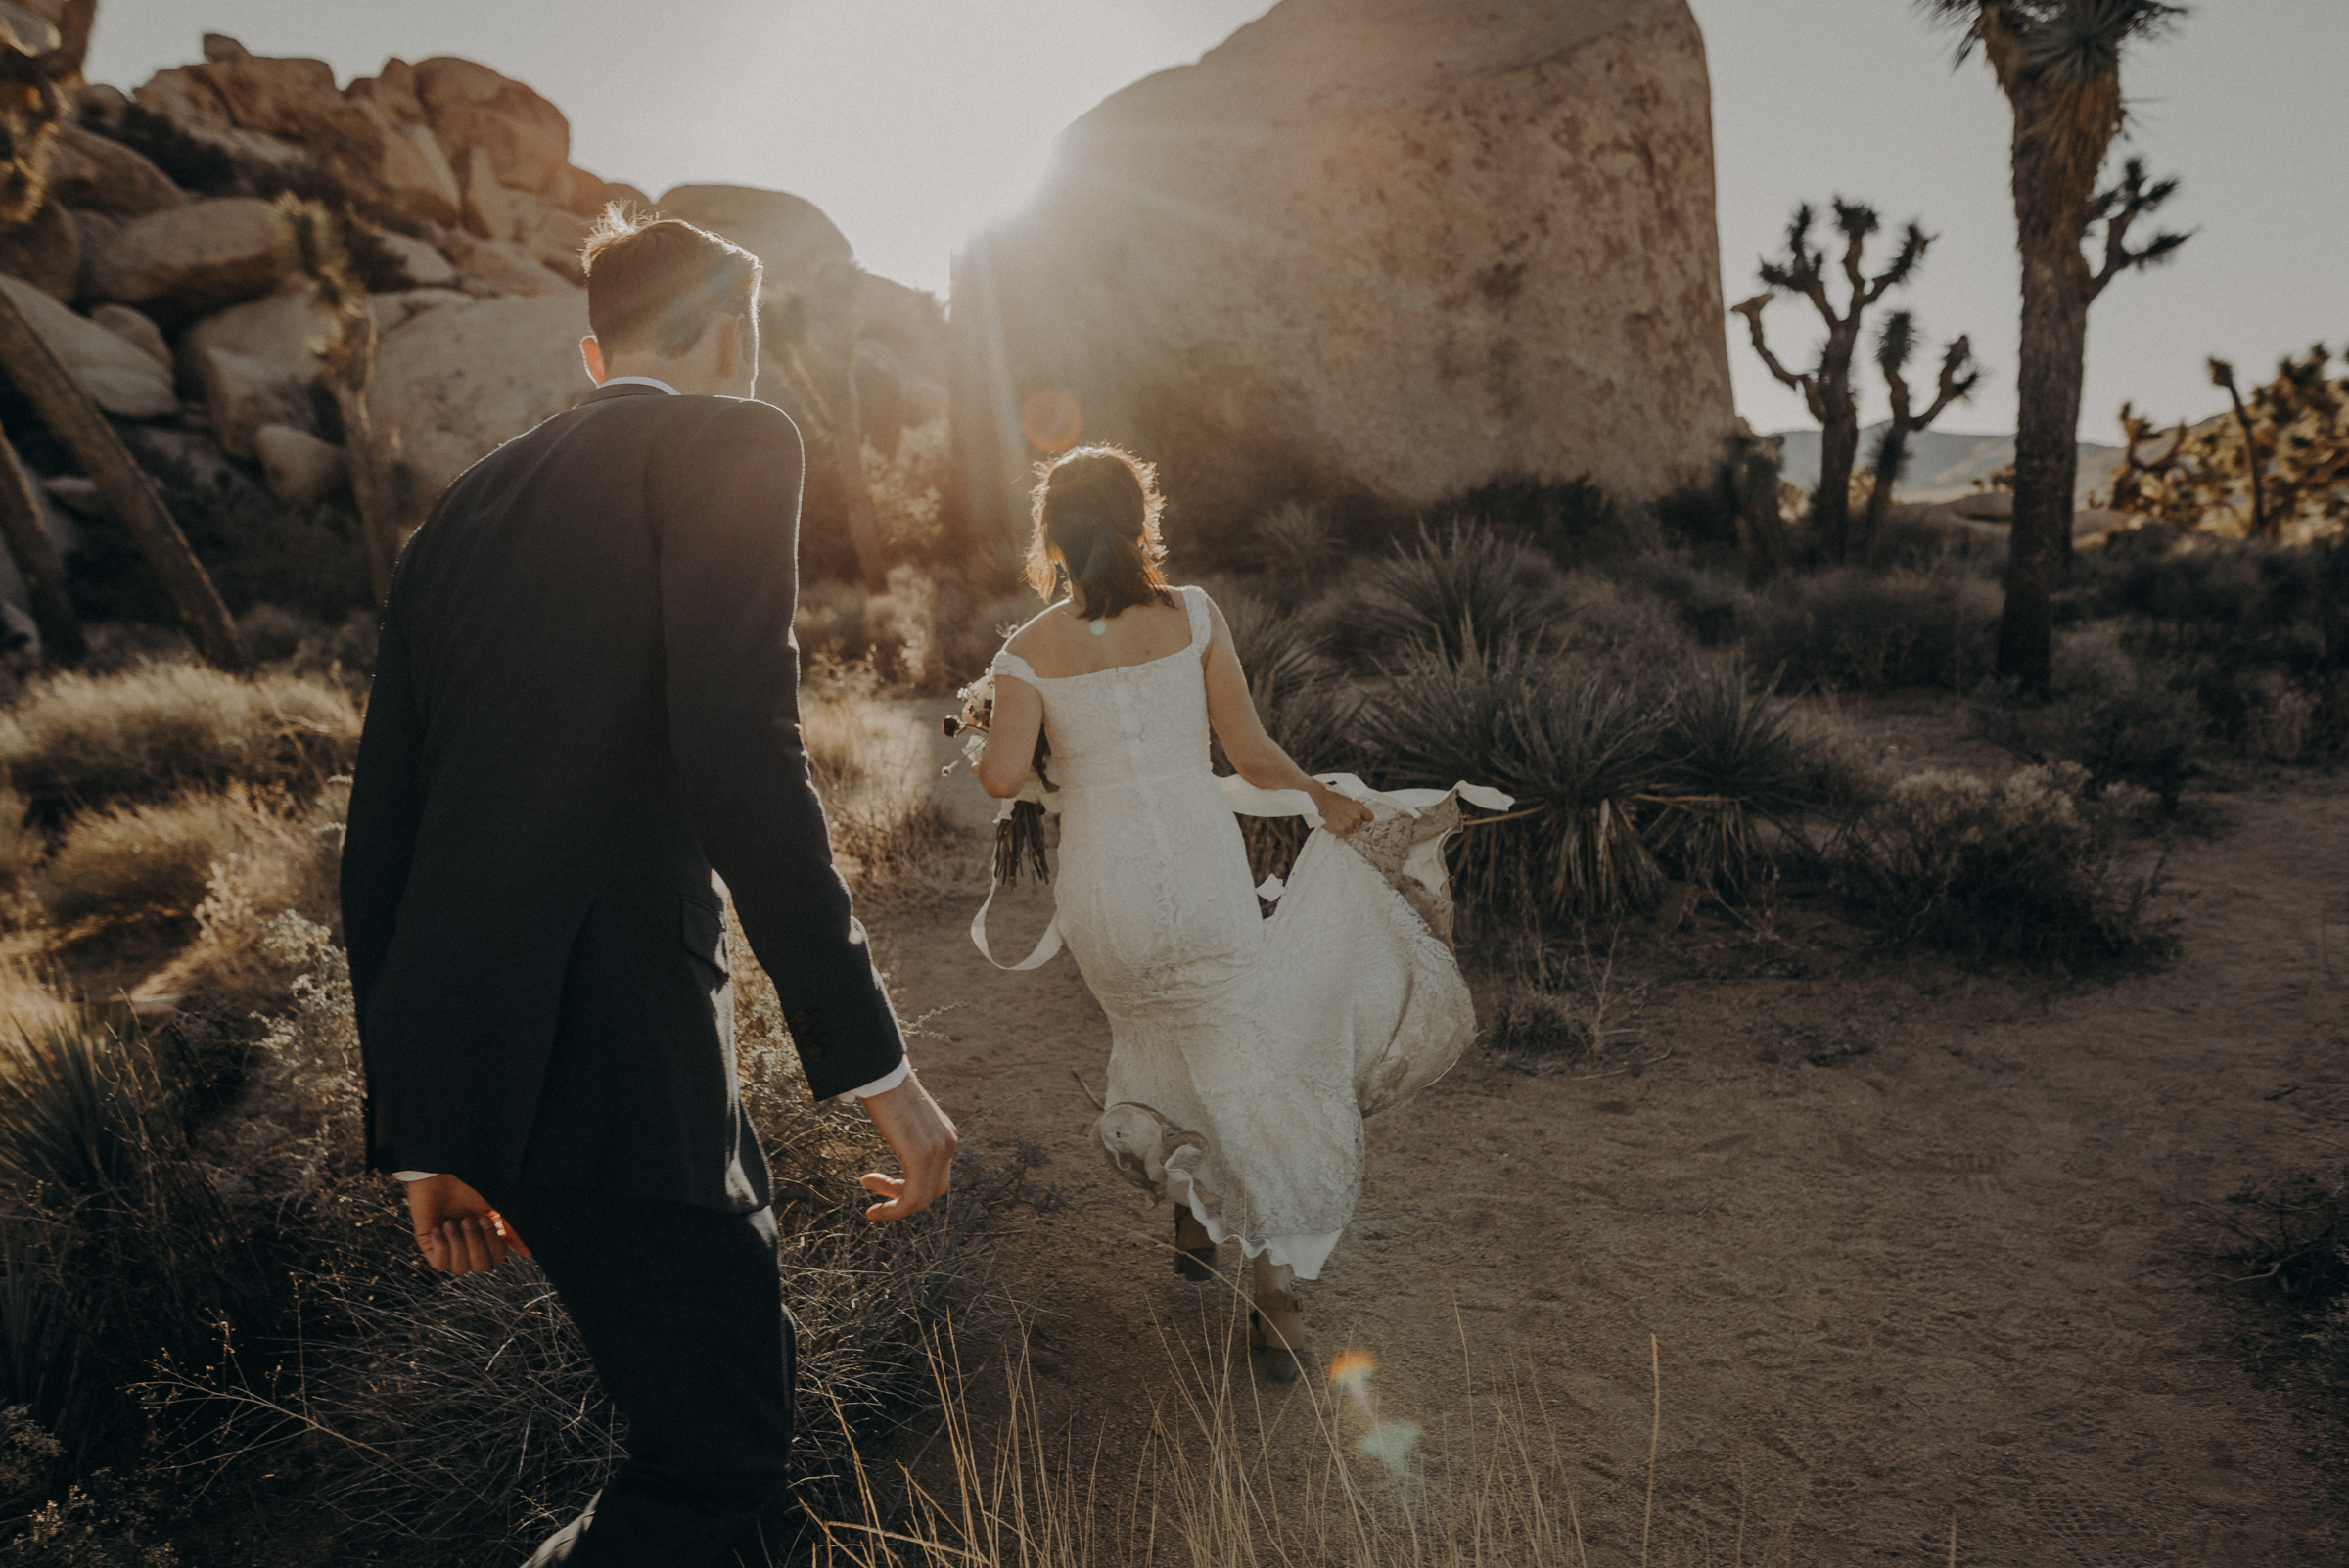 Joshua Tree Elopement - Los Angeles Wedding Photographers - IsaiahAndTaylor.com-057.jpg